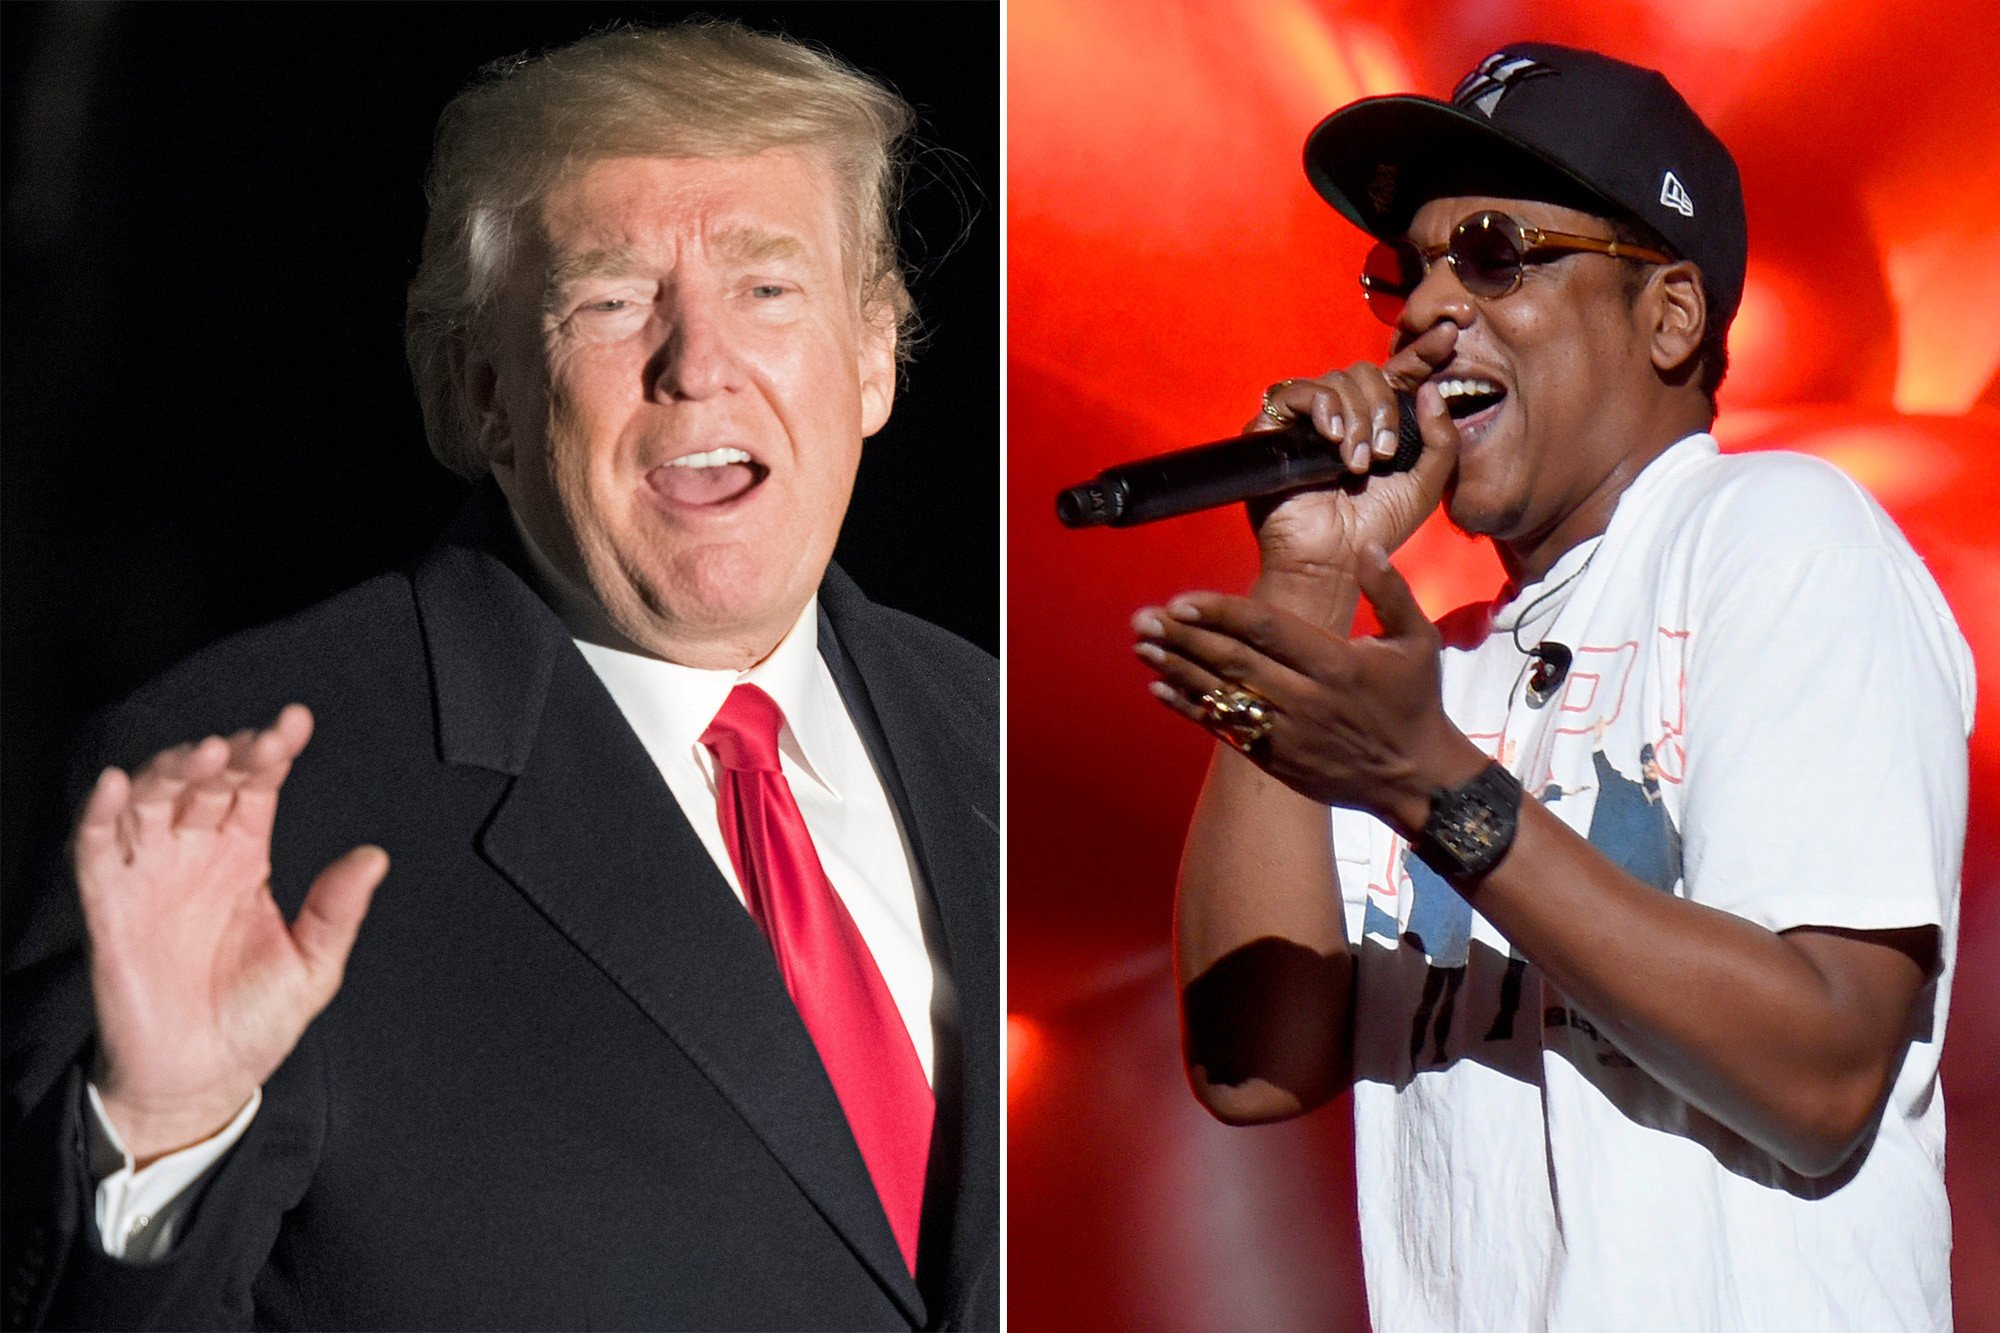 Trump wages Twitter war with Jay Z